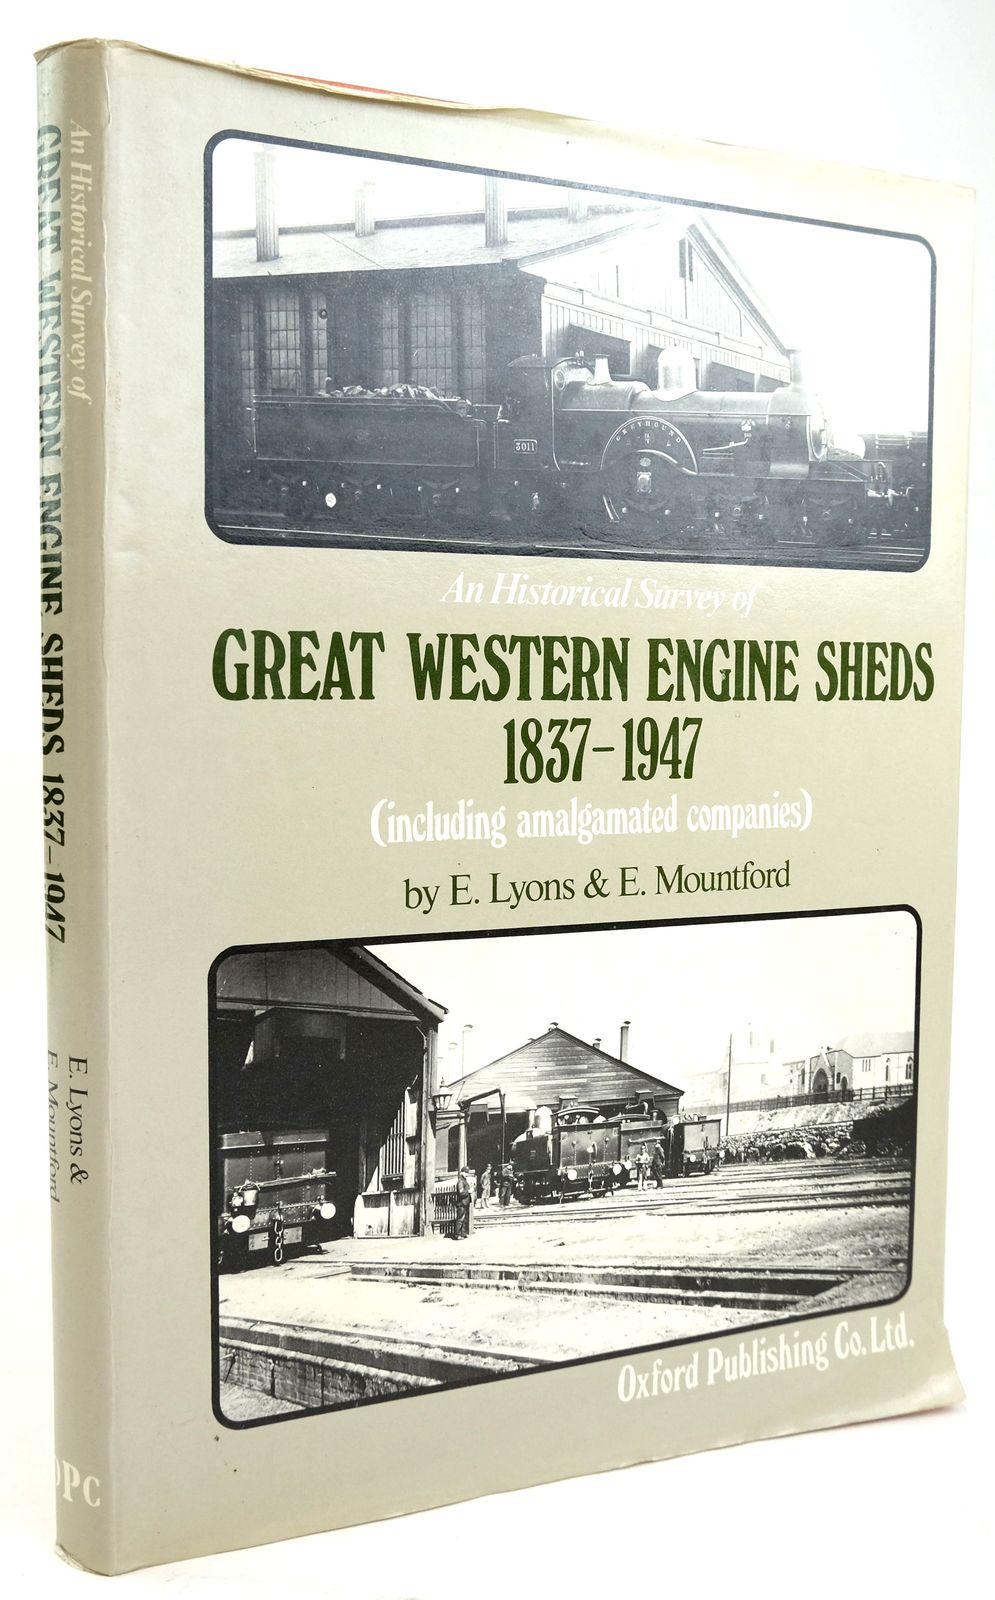 Photo of AN HISTORICAL SURVEY OF GREAT WESTERN ENGINE SHEDS 1837-1947- Stock Number: 1820188